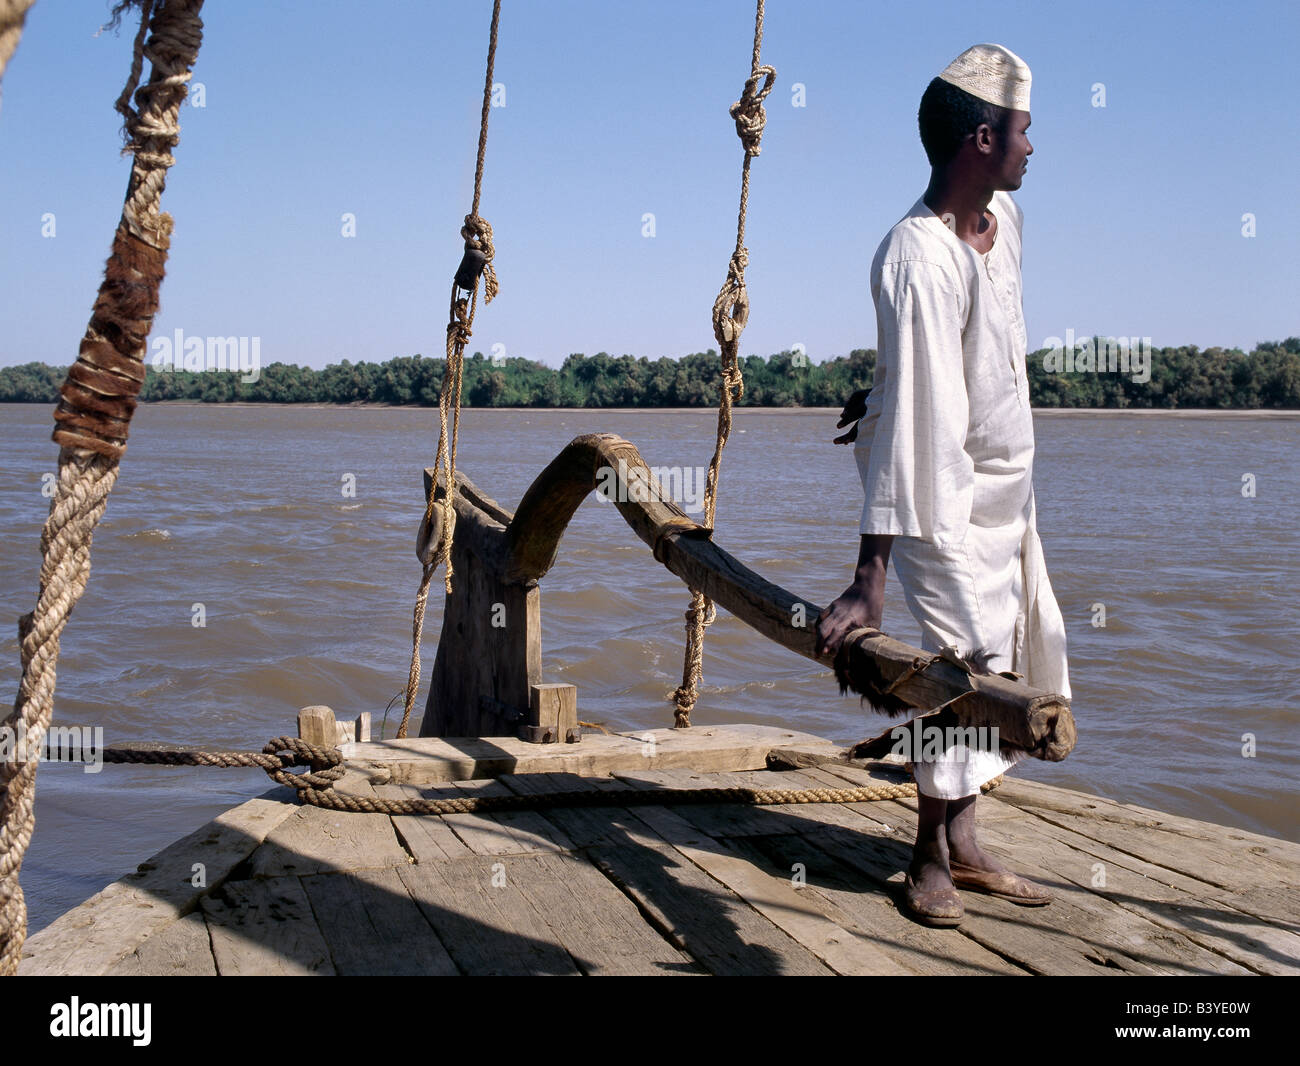 Sudan, Delgo. A Nubian boatman at the helm of his felucca, a wooden sailing boat that plies the waters of the River - Stock Image